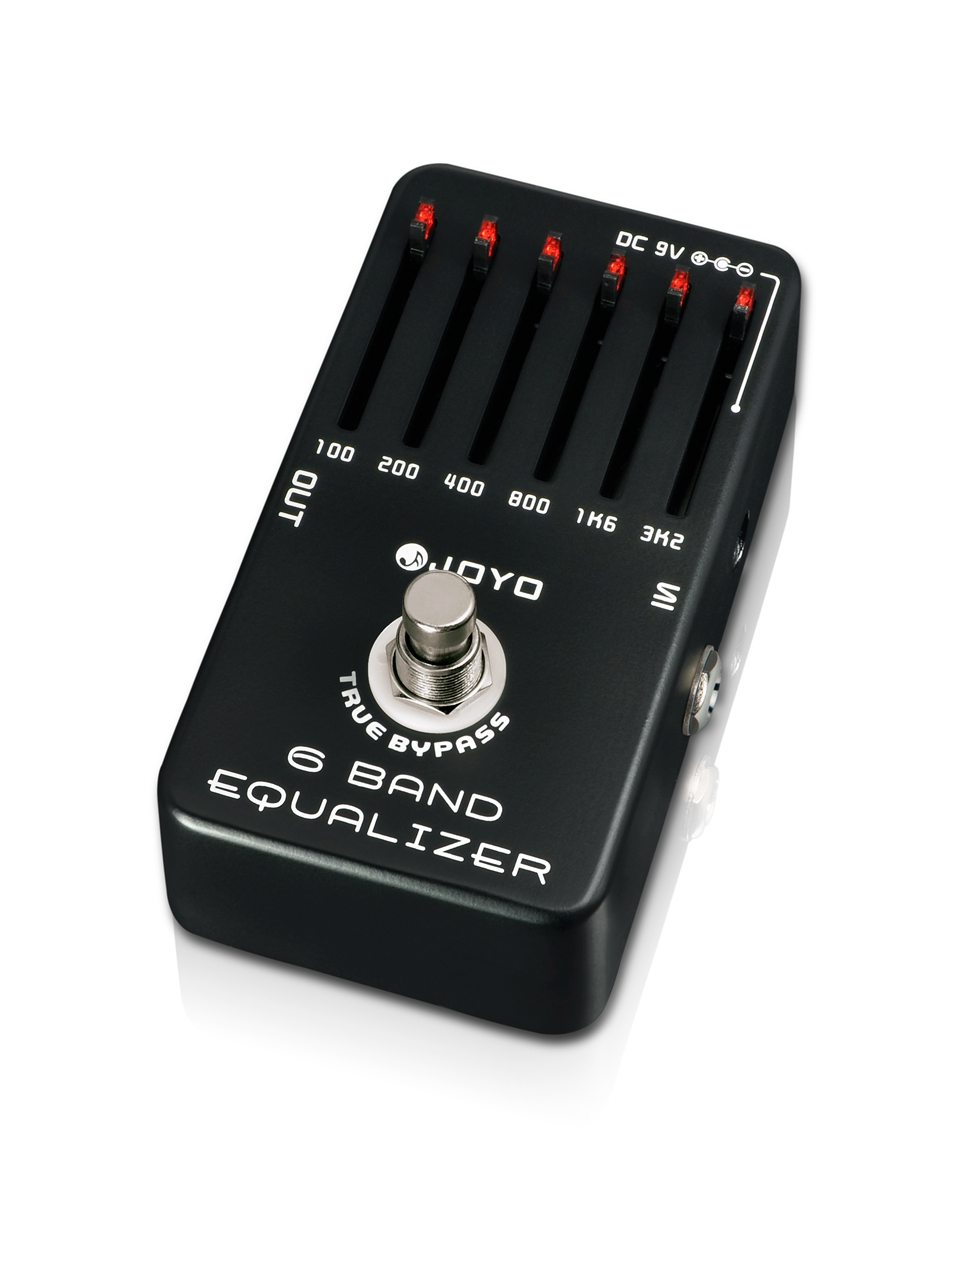 JOYO 6 Band Guitar EQ Pedal Equalizer Adjust Low Middle High Frequency A Range Of 36dB Adjustment Each Band Free Shipping free shipping 5pcs eq ed eq in stock